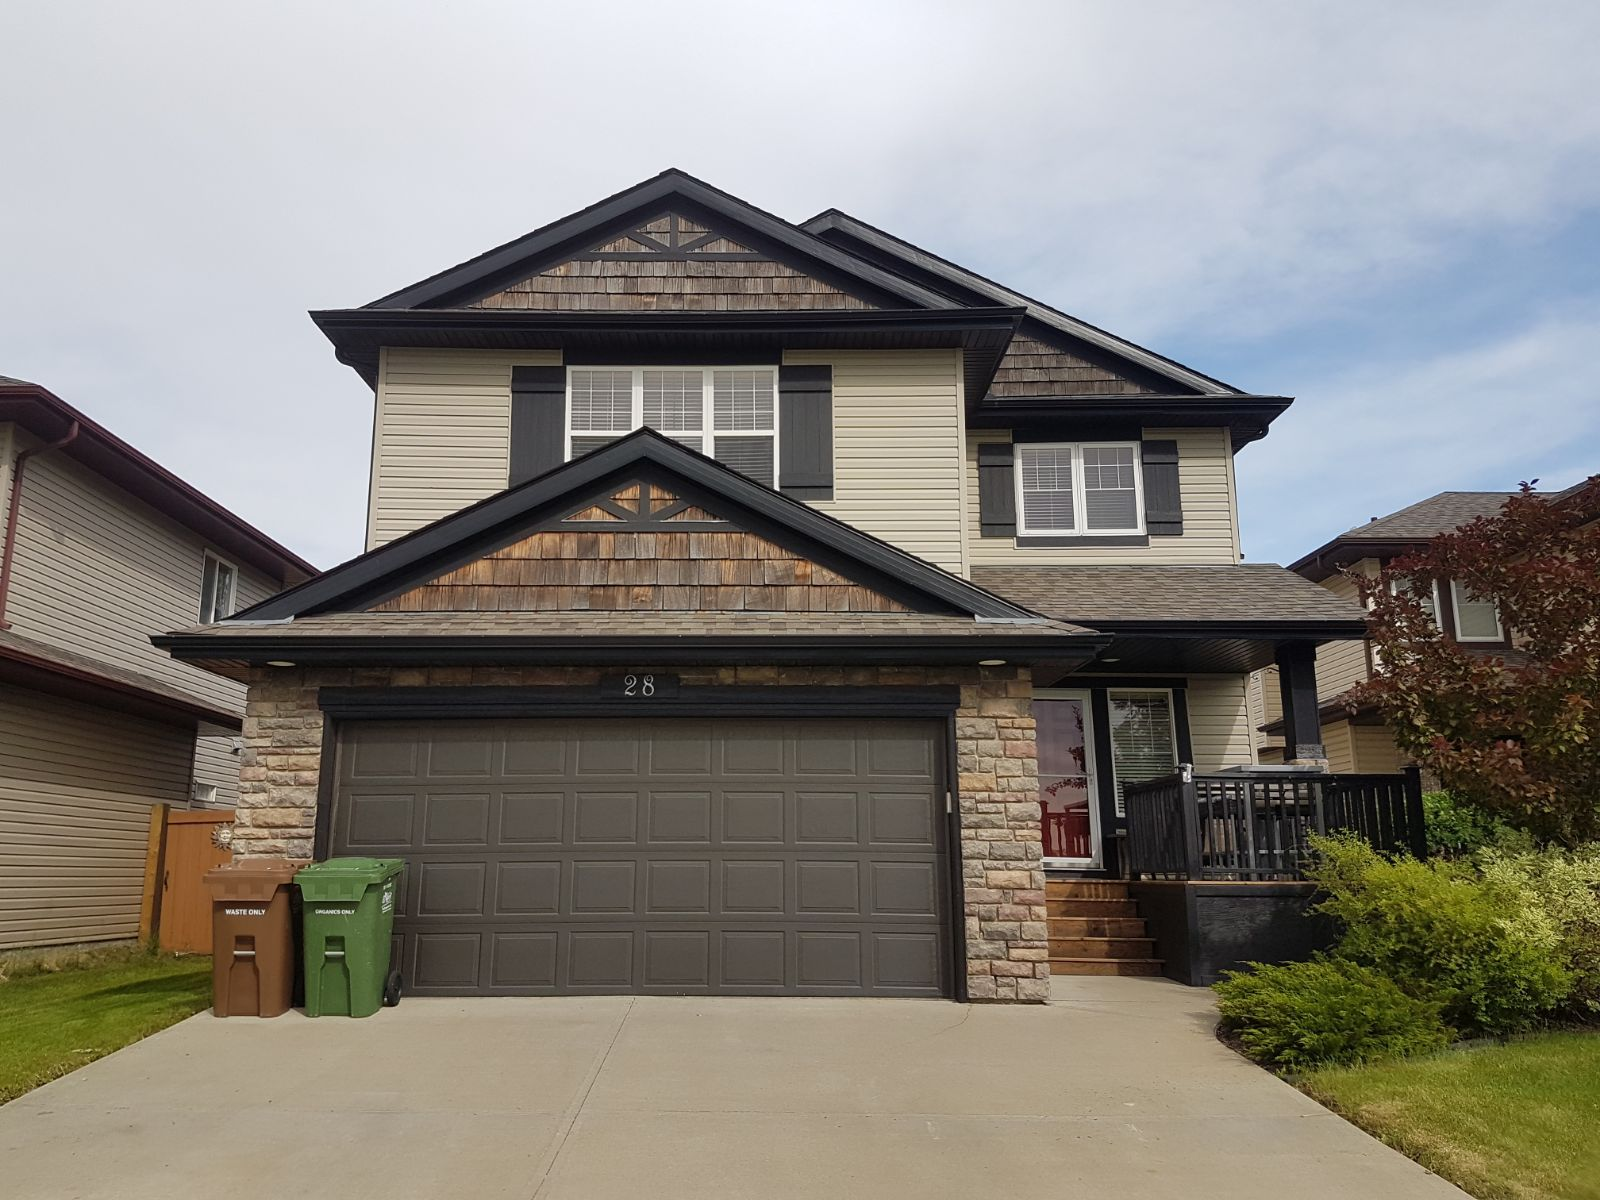 Main Photo: 28 Newmarket Way in St. Albert: House for rent